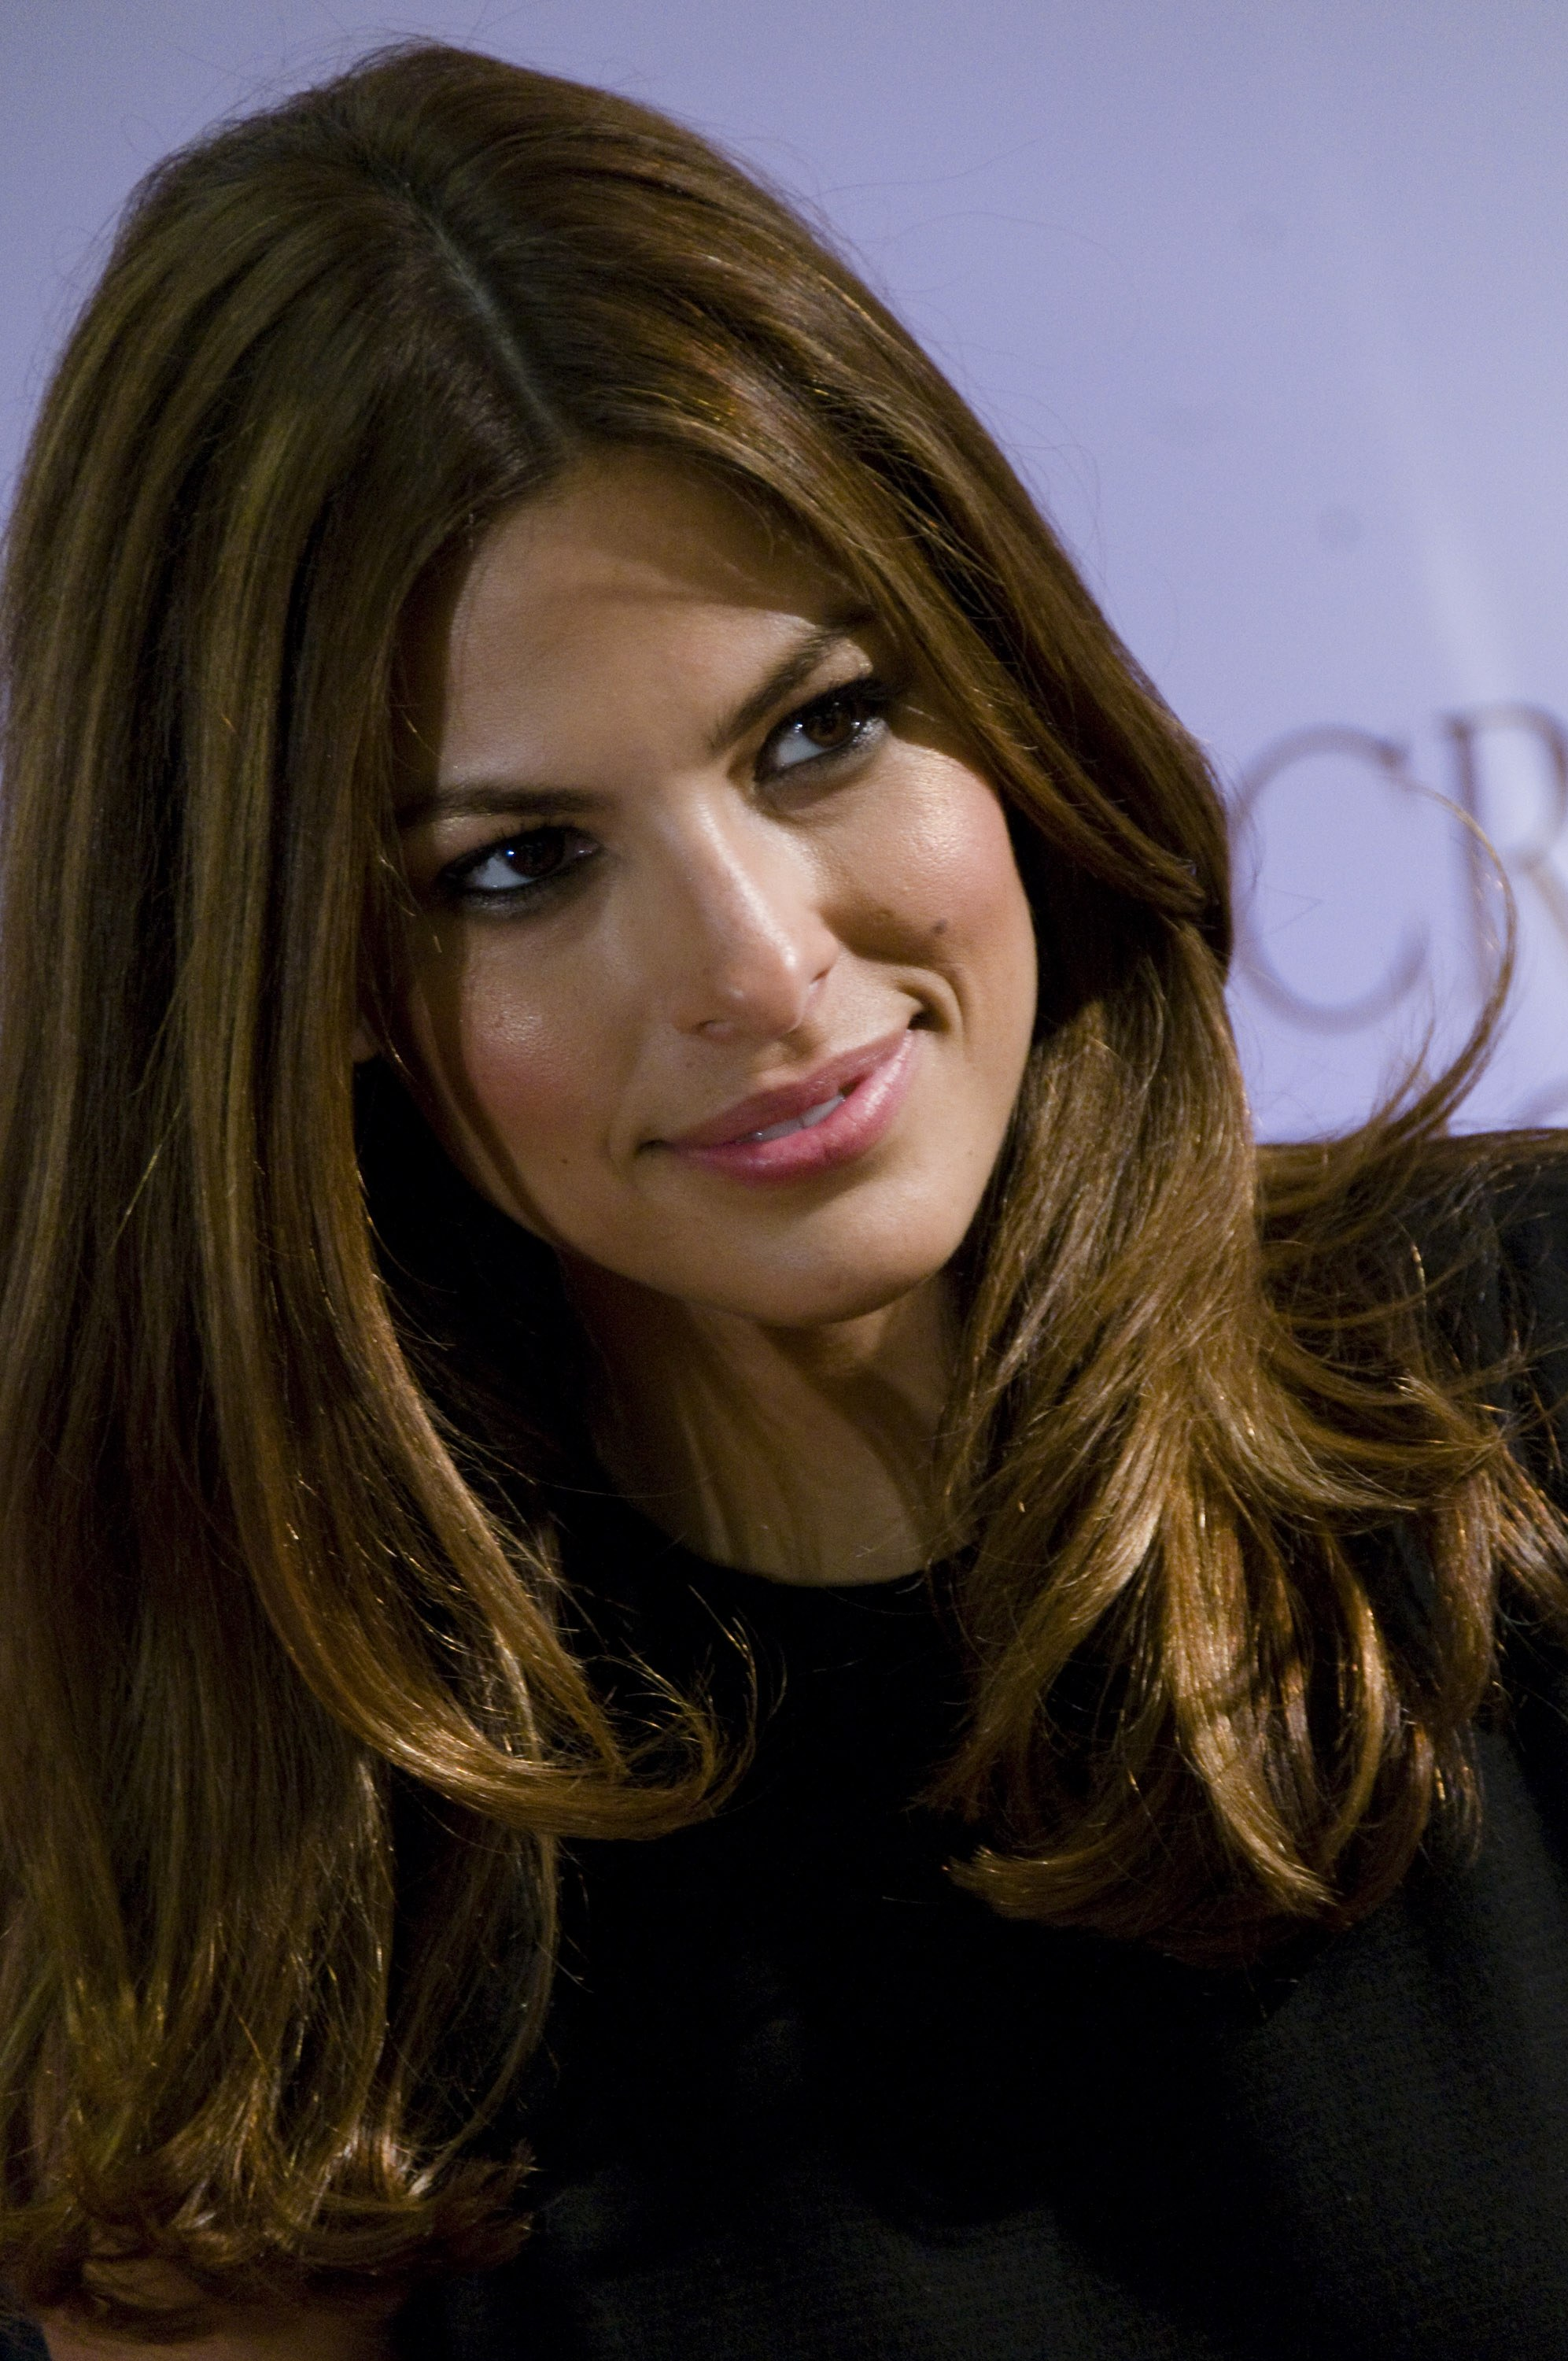 00503_Eva_Mendes_in_Rome_to_promote_the_new_fragrance_of_Calvin_Klein_CU_ISA_0008_122_631lo.jpg